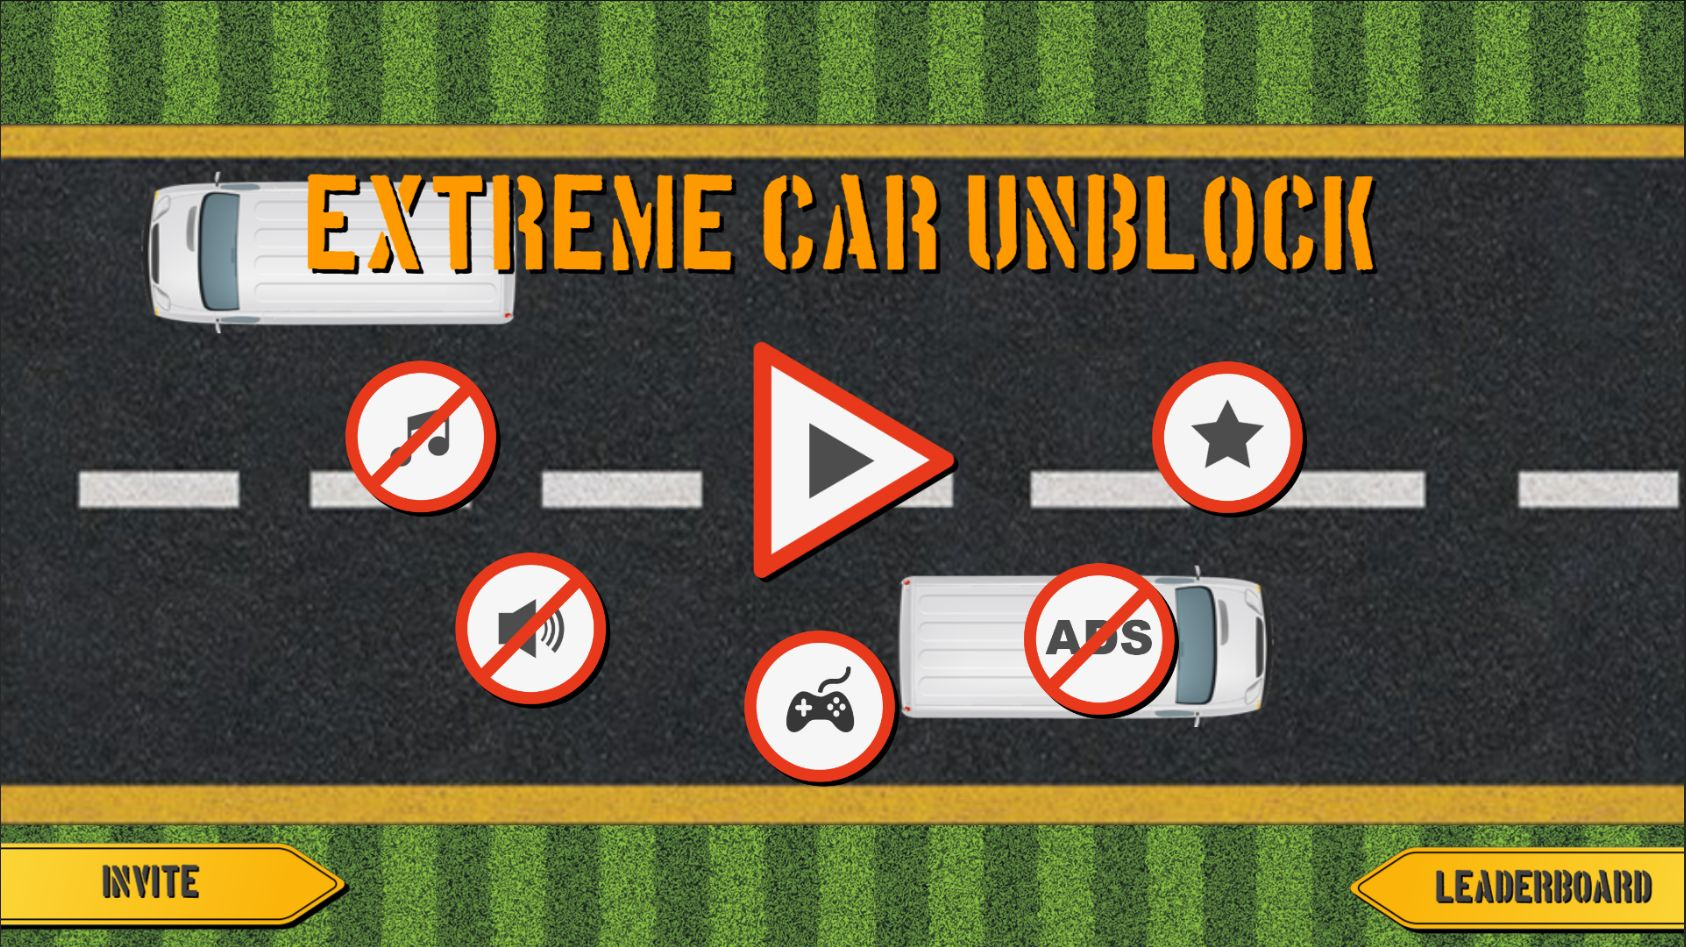 Extreme Car Unblock - Complete Unity Project Screenshot 1